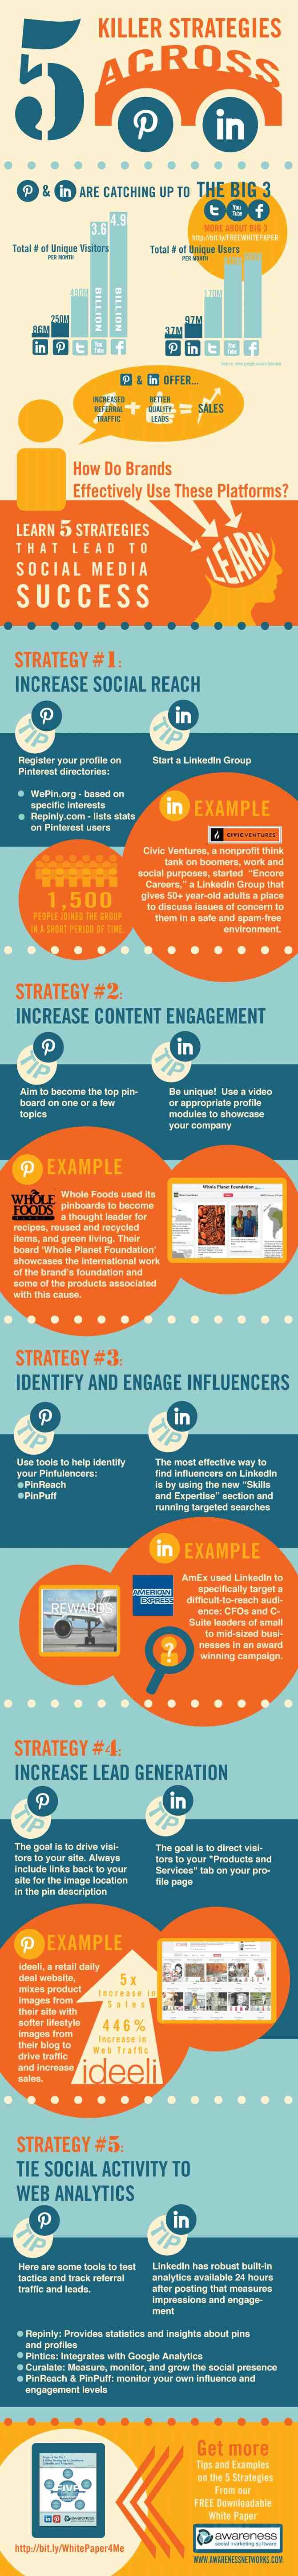 5 Killer Strategies for Brands to Dominate Pinterest and LinkedIn [infographic]